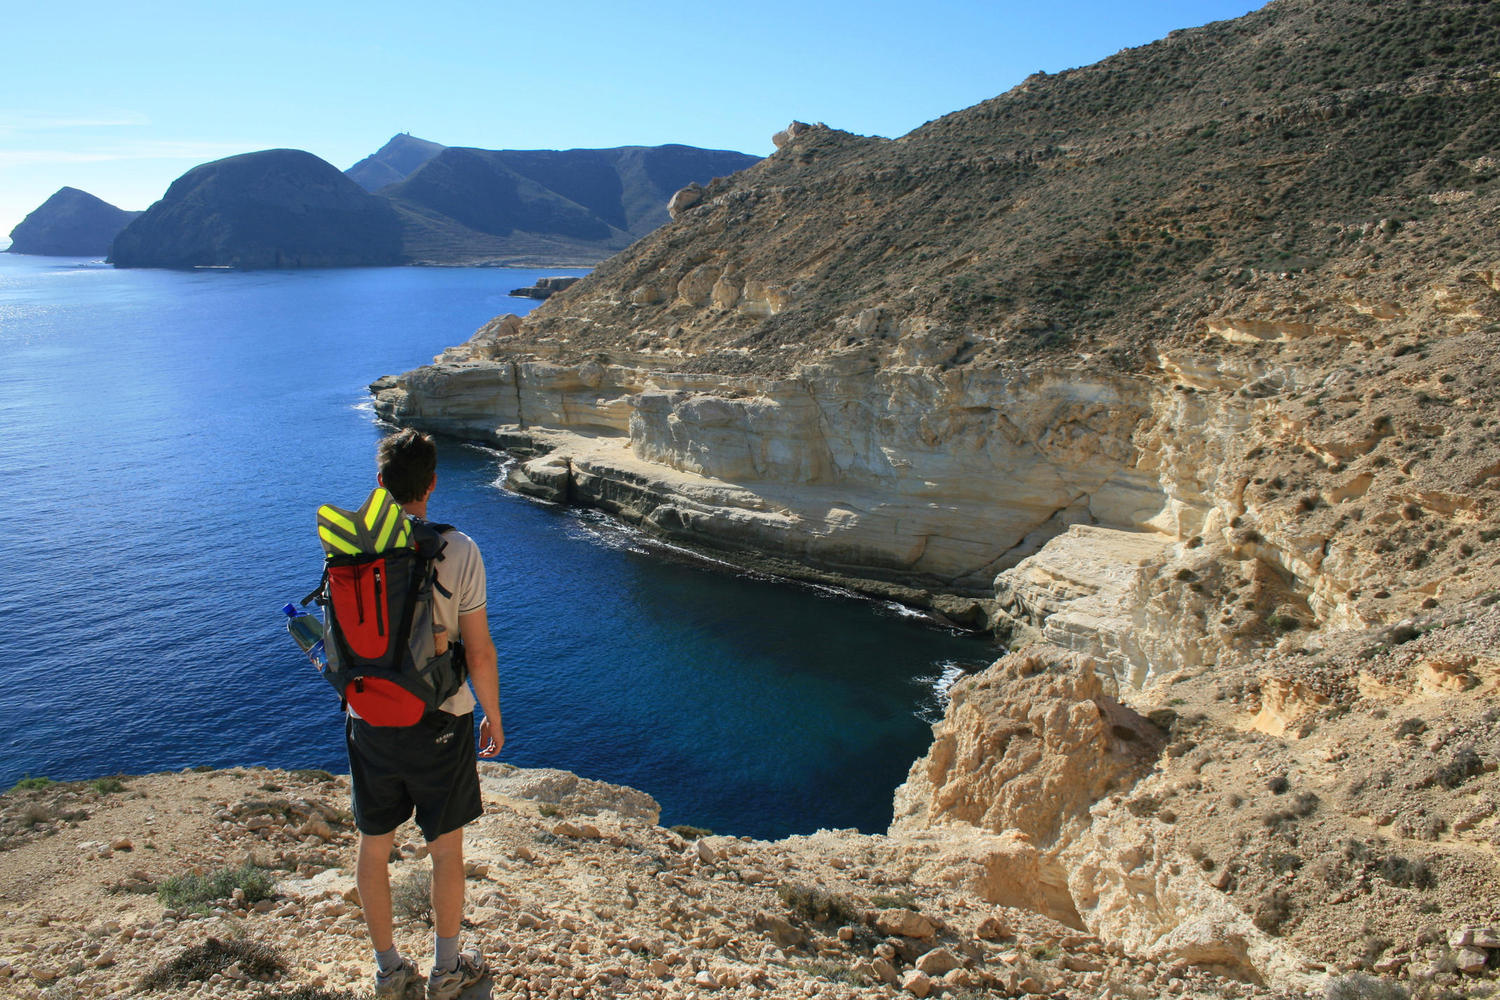 Hiking and snorkelling are the ways to explore Cabo de Gata.